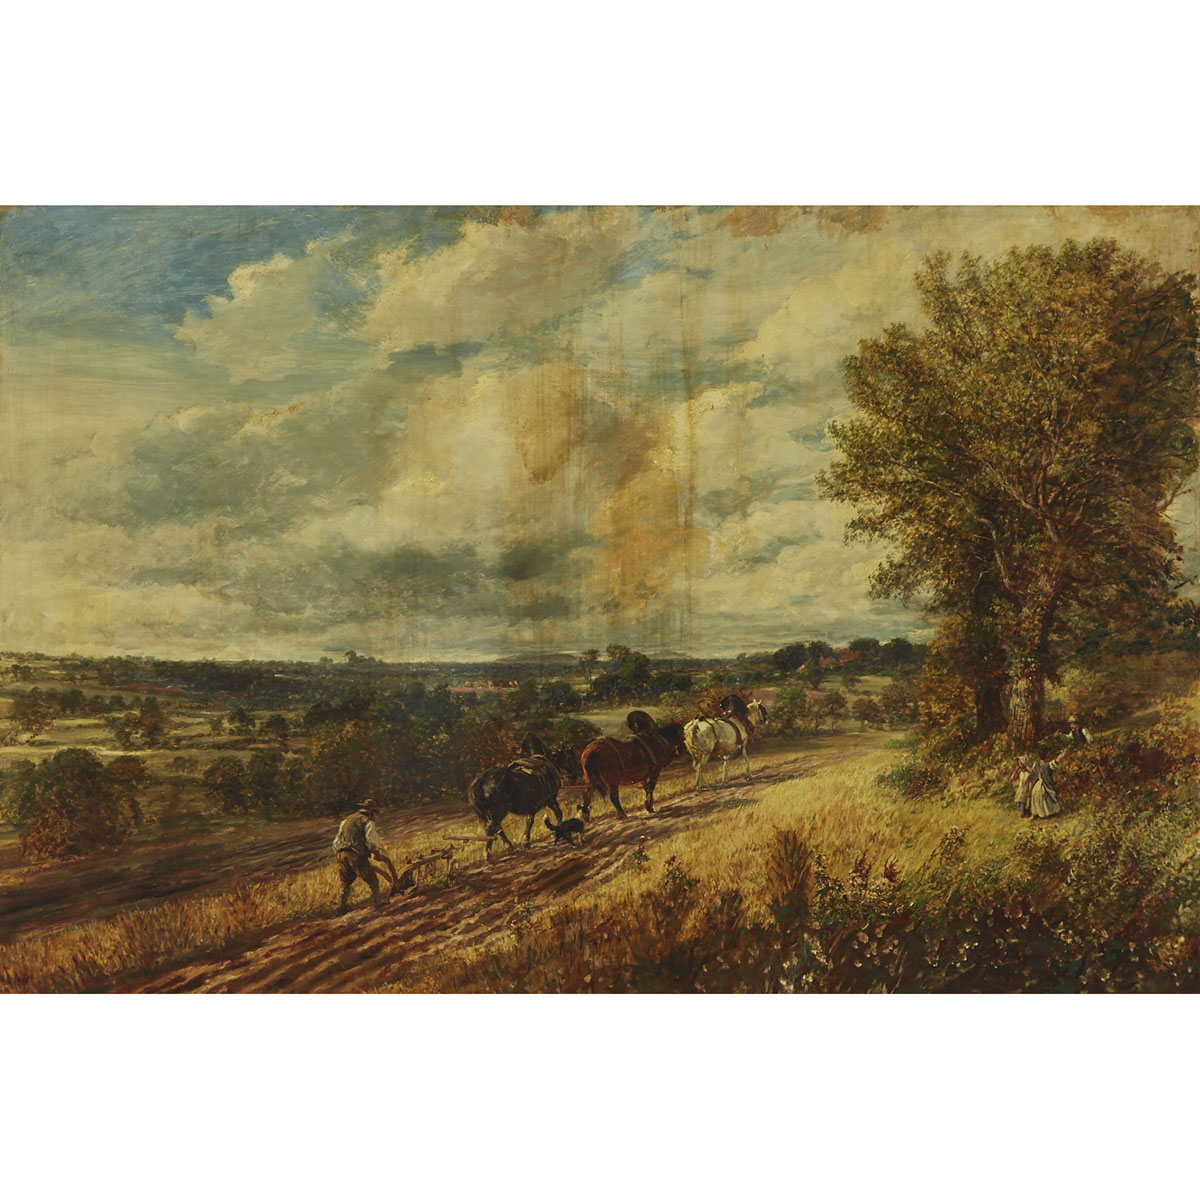 Attributed to John Linnell Snr. (1792-1882)